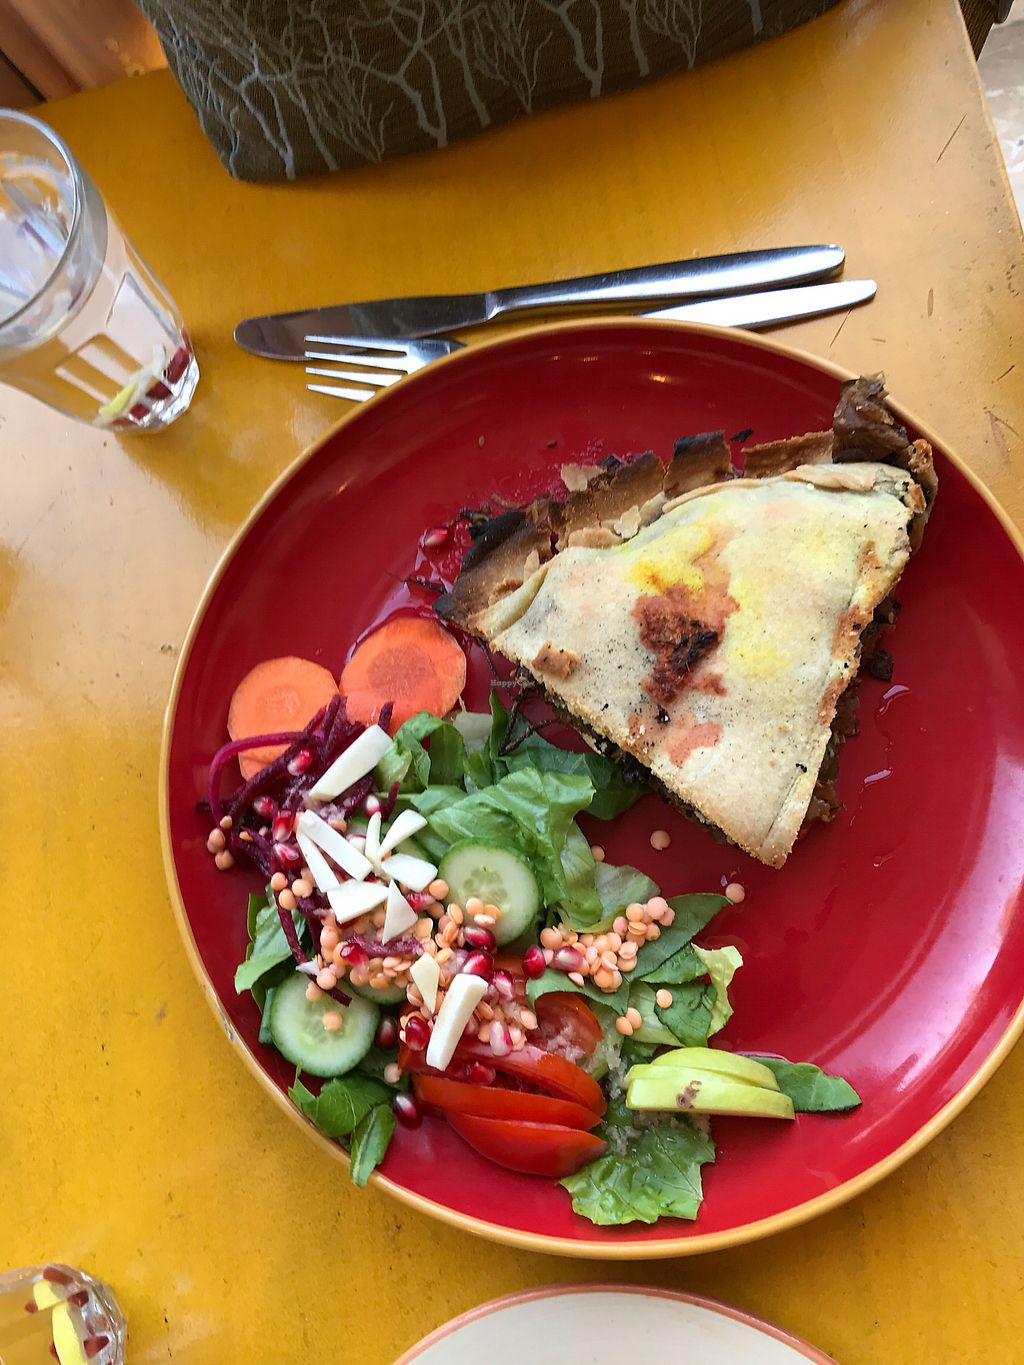 """Photo of Te'enim  by <a href=""""/members/profile/Brok%20O.%20Lee"""">Brok O. Lee</a> <br/>vegan mushroom-seaweed pie <br/> August 30, 2017  - <a href='/contact/abuse/image/74/298934'>Report</a>"""